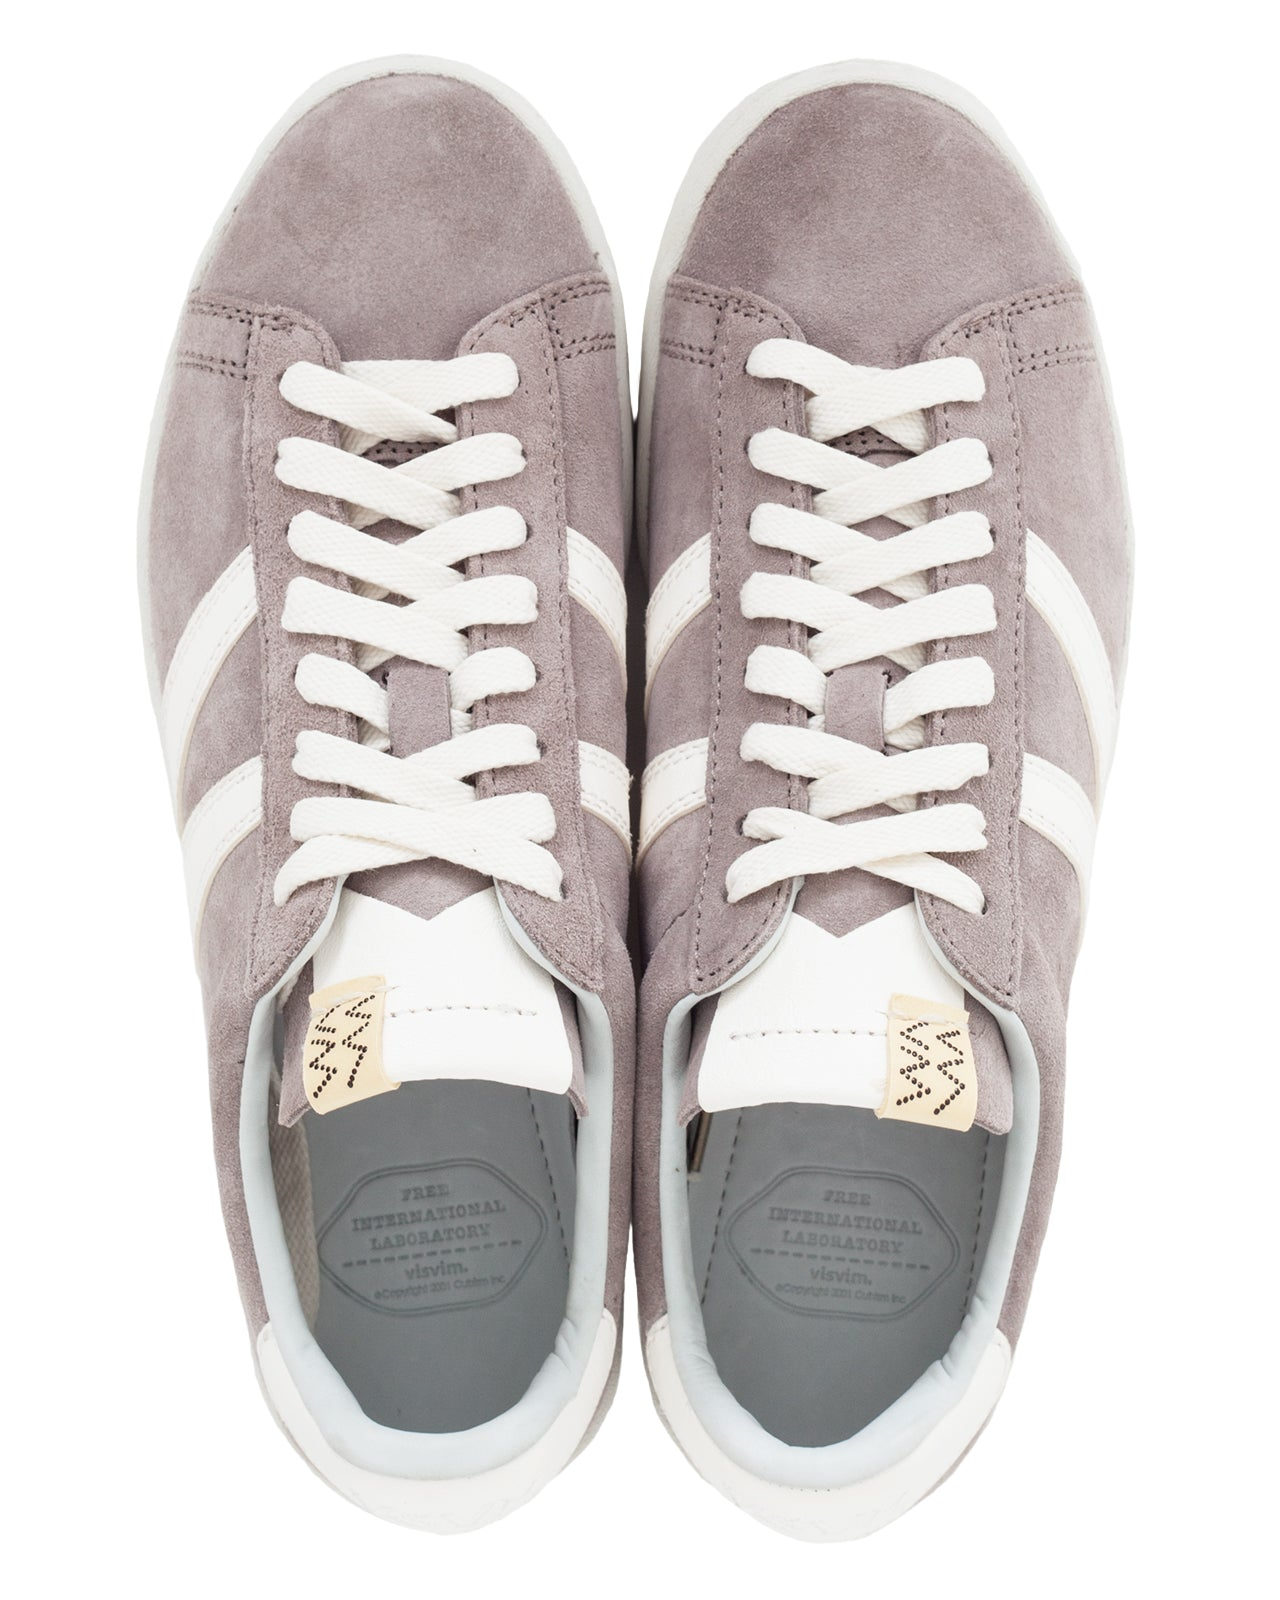 Visvim Corda-Folk, Grey